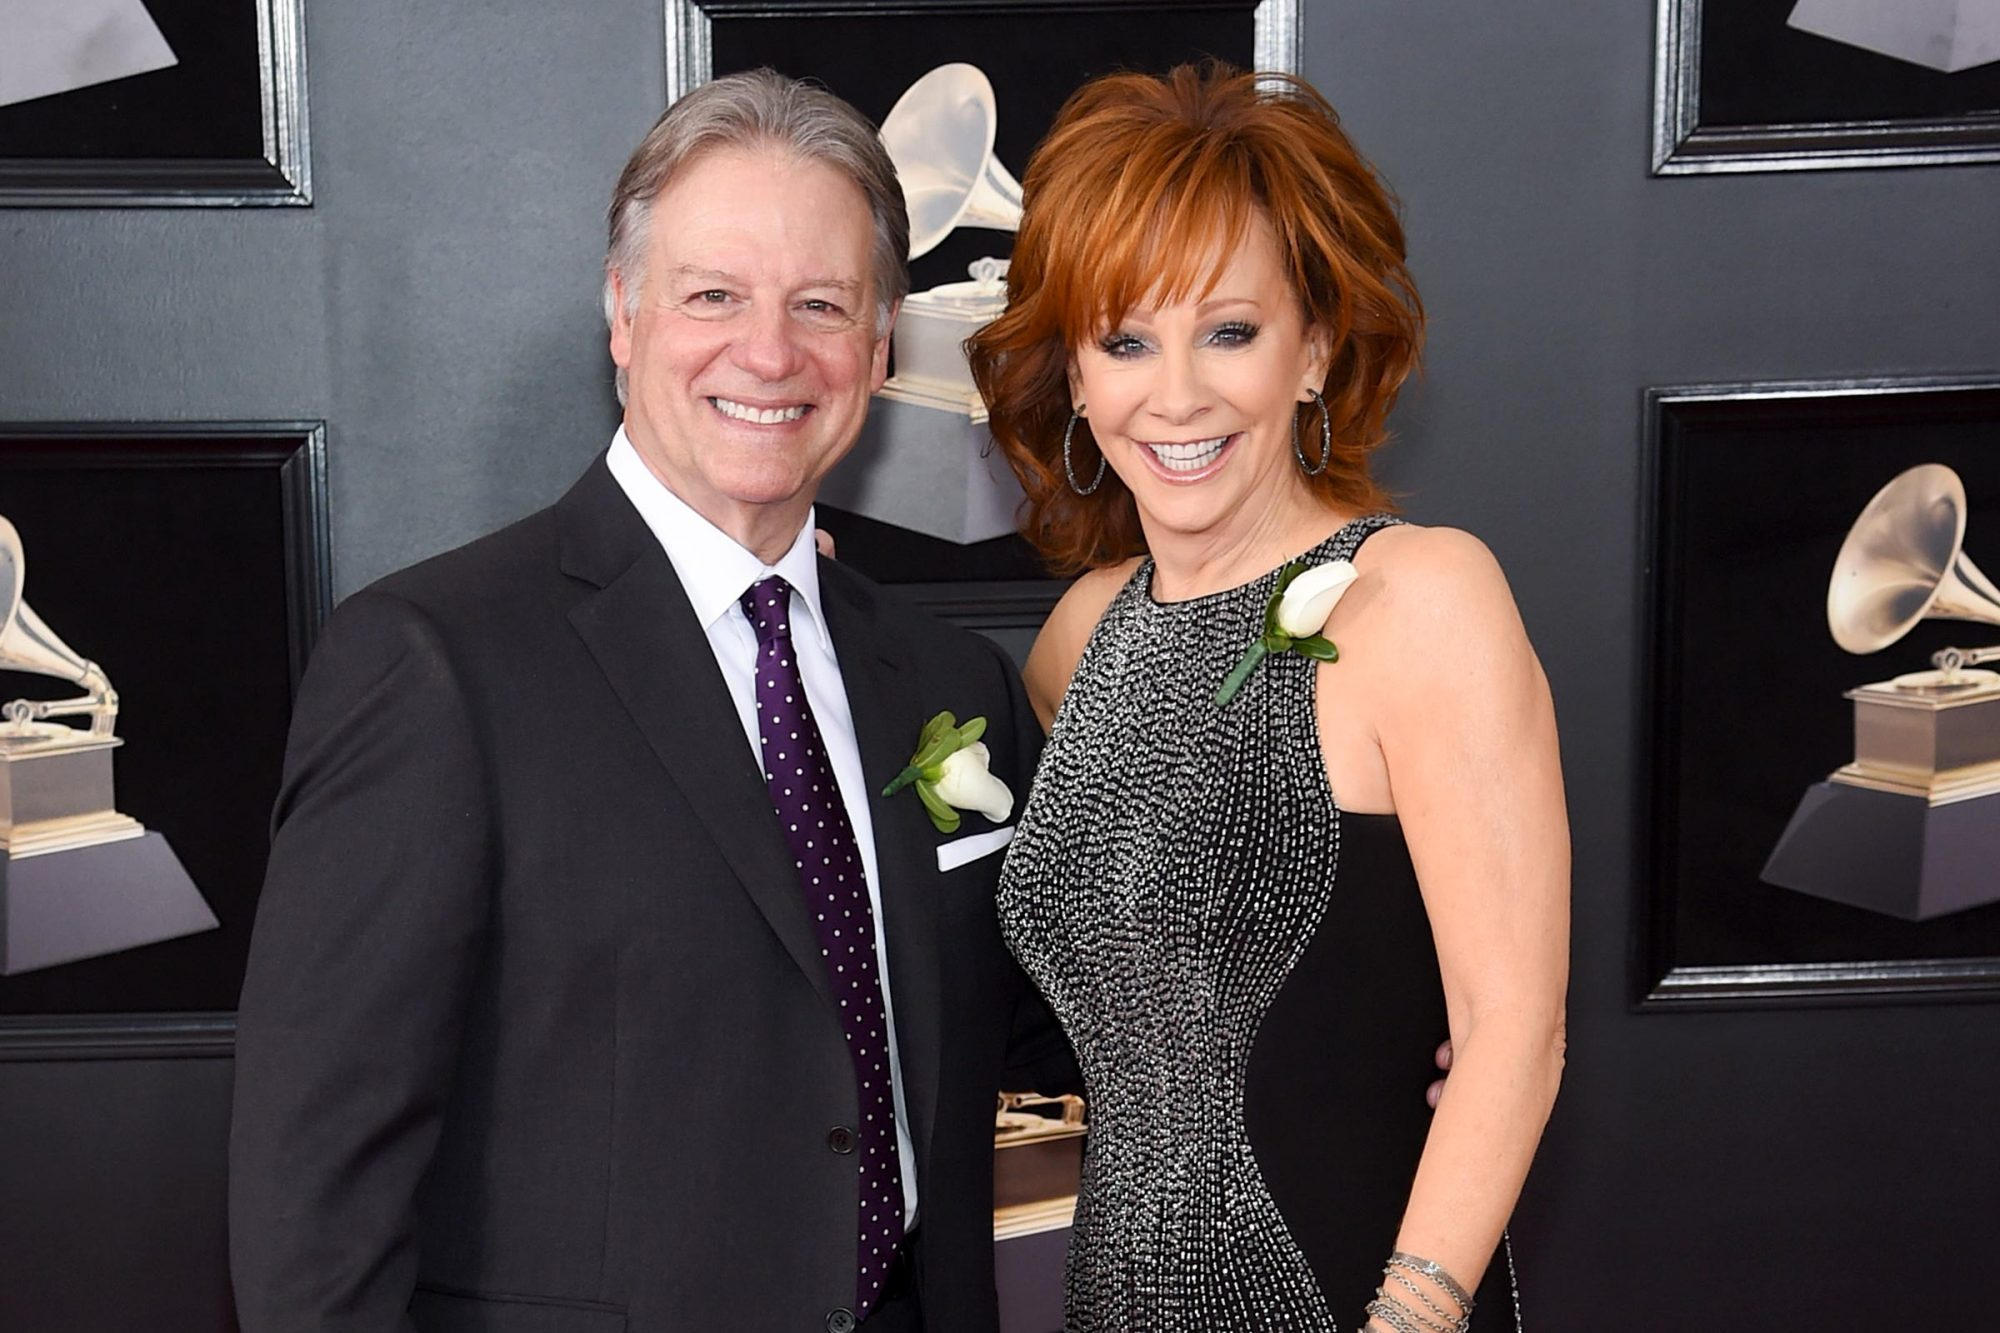 Anthony 'Skeeter' Lasuzzo and Reba McEntire